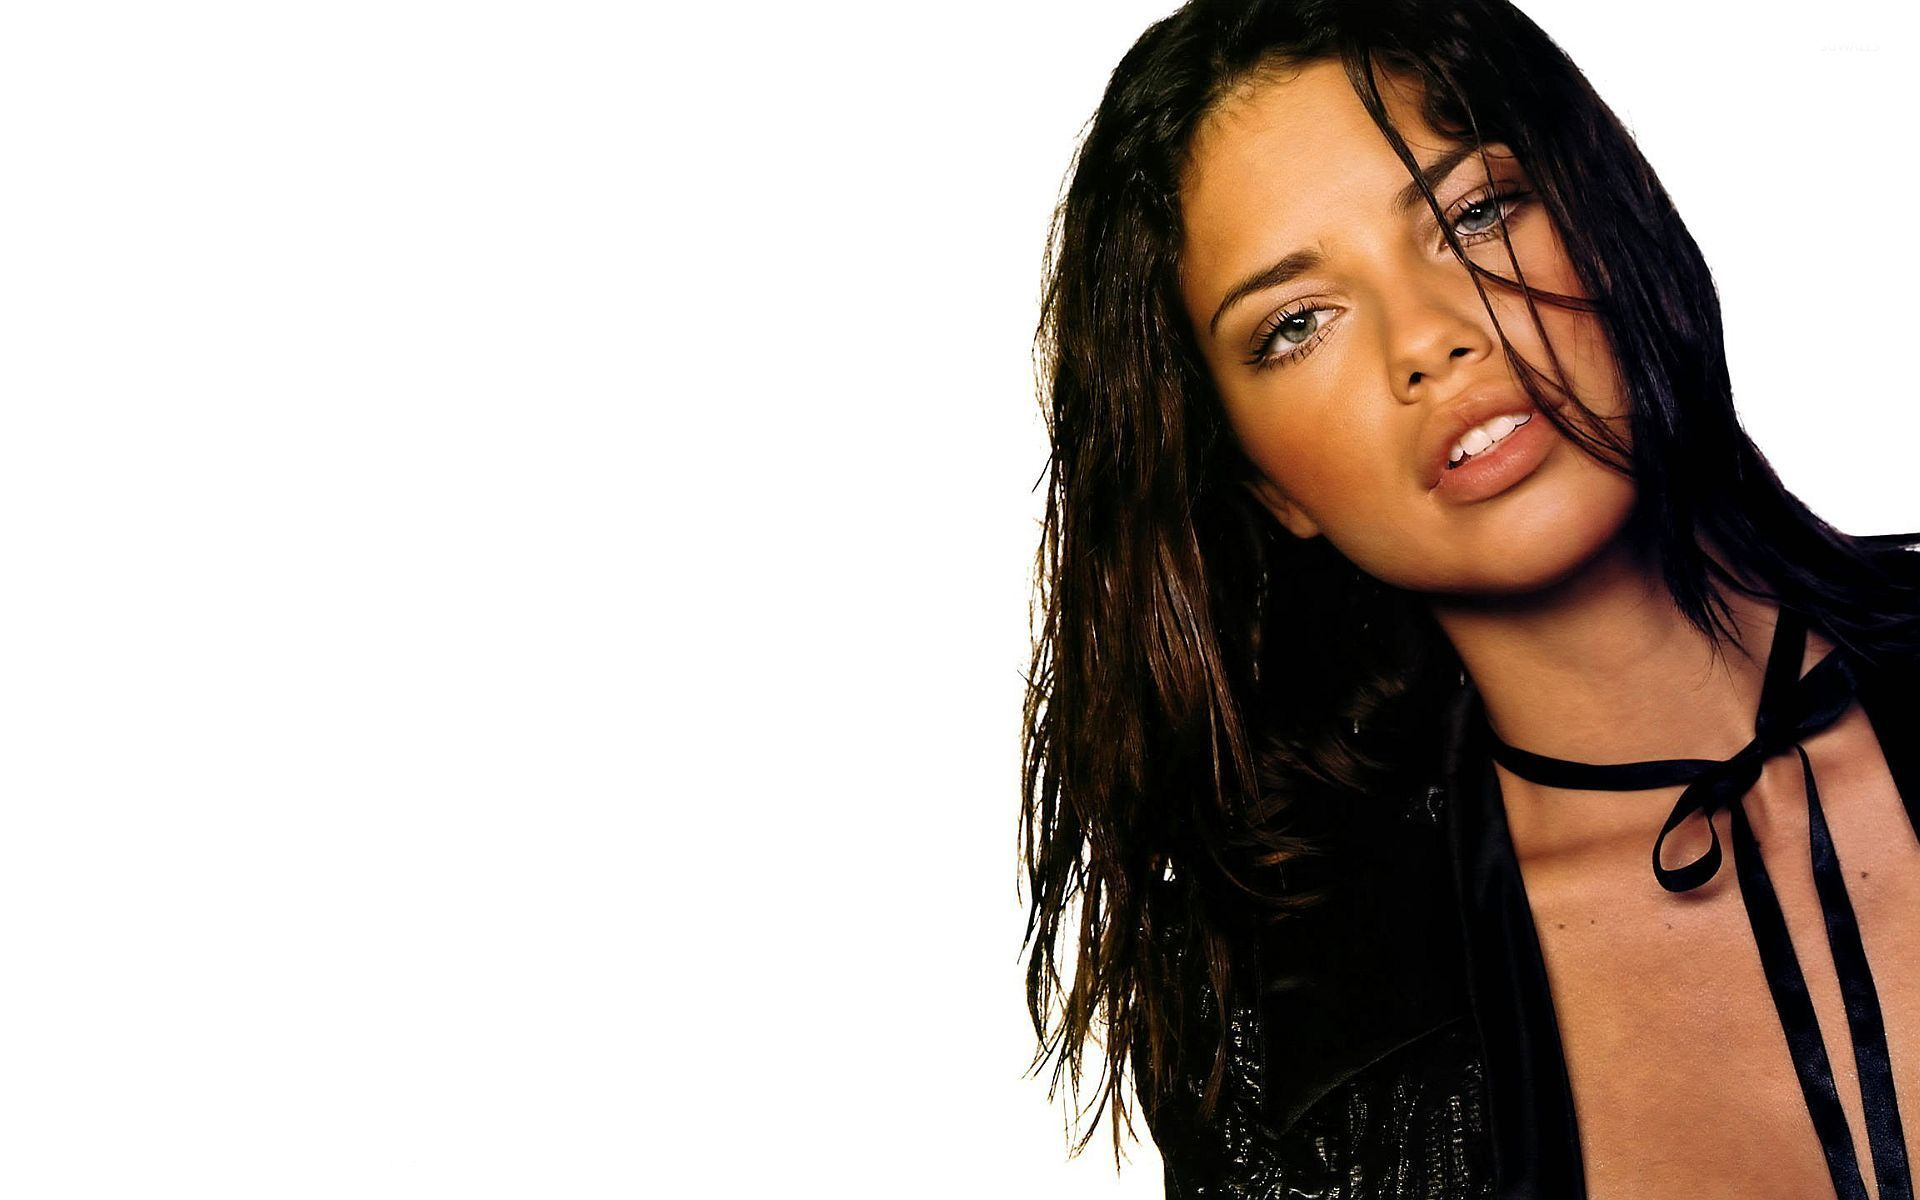 Adriana lima 41 wallpaper girl wallpapers 5097 adriana lima 41 wallpaper voltagebd Gallery